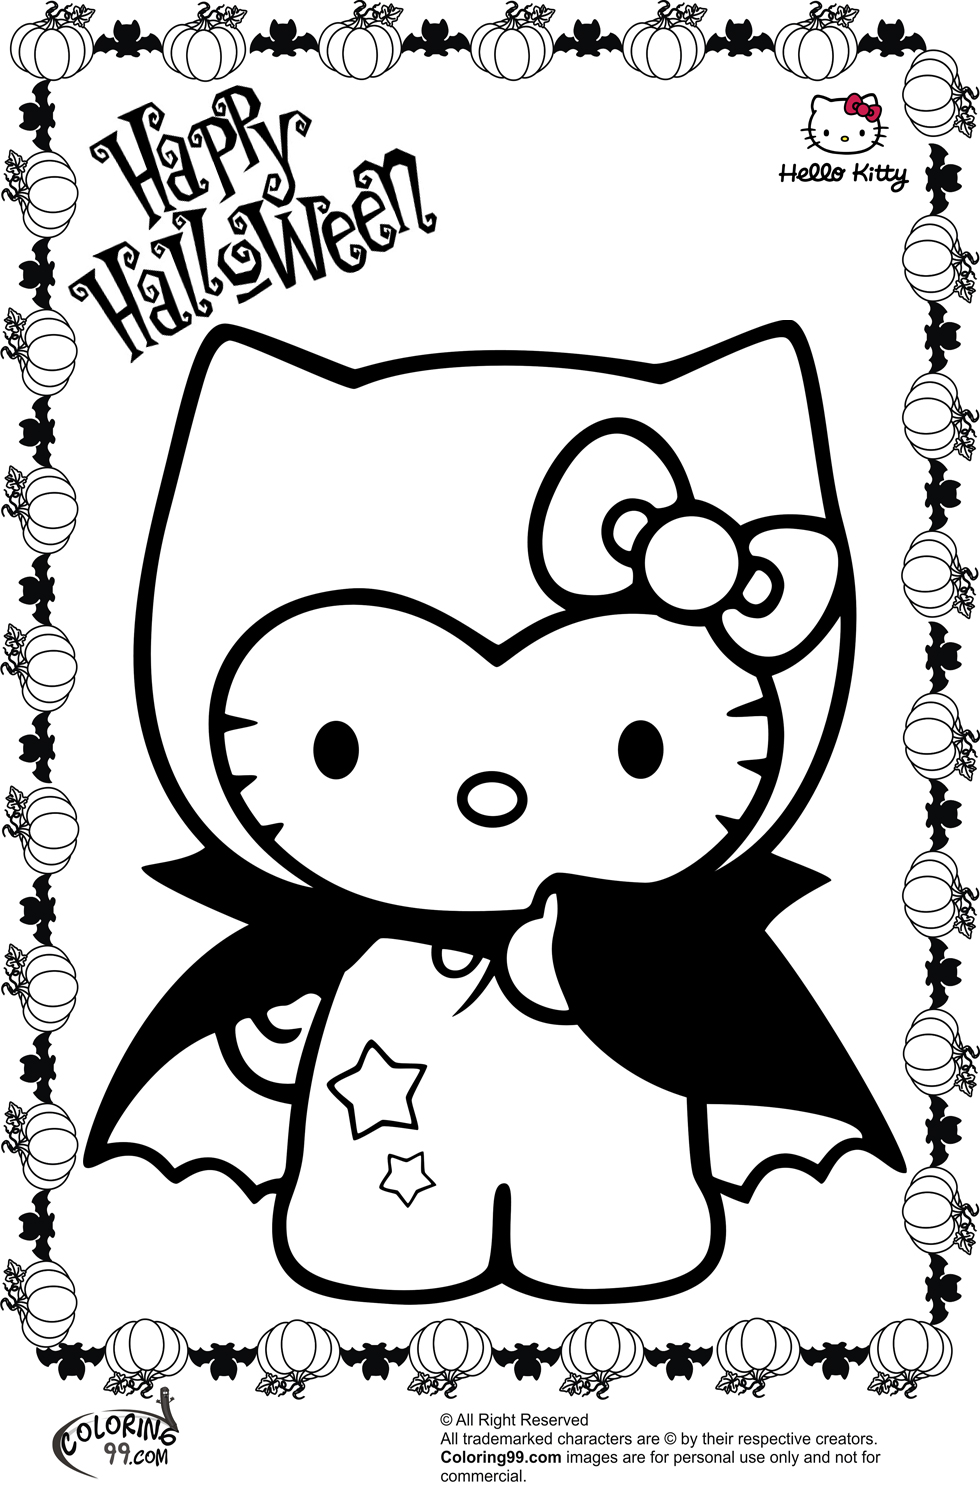 halween coloring pages - photo#16